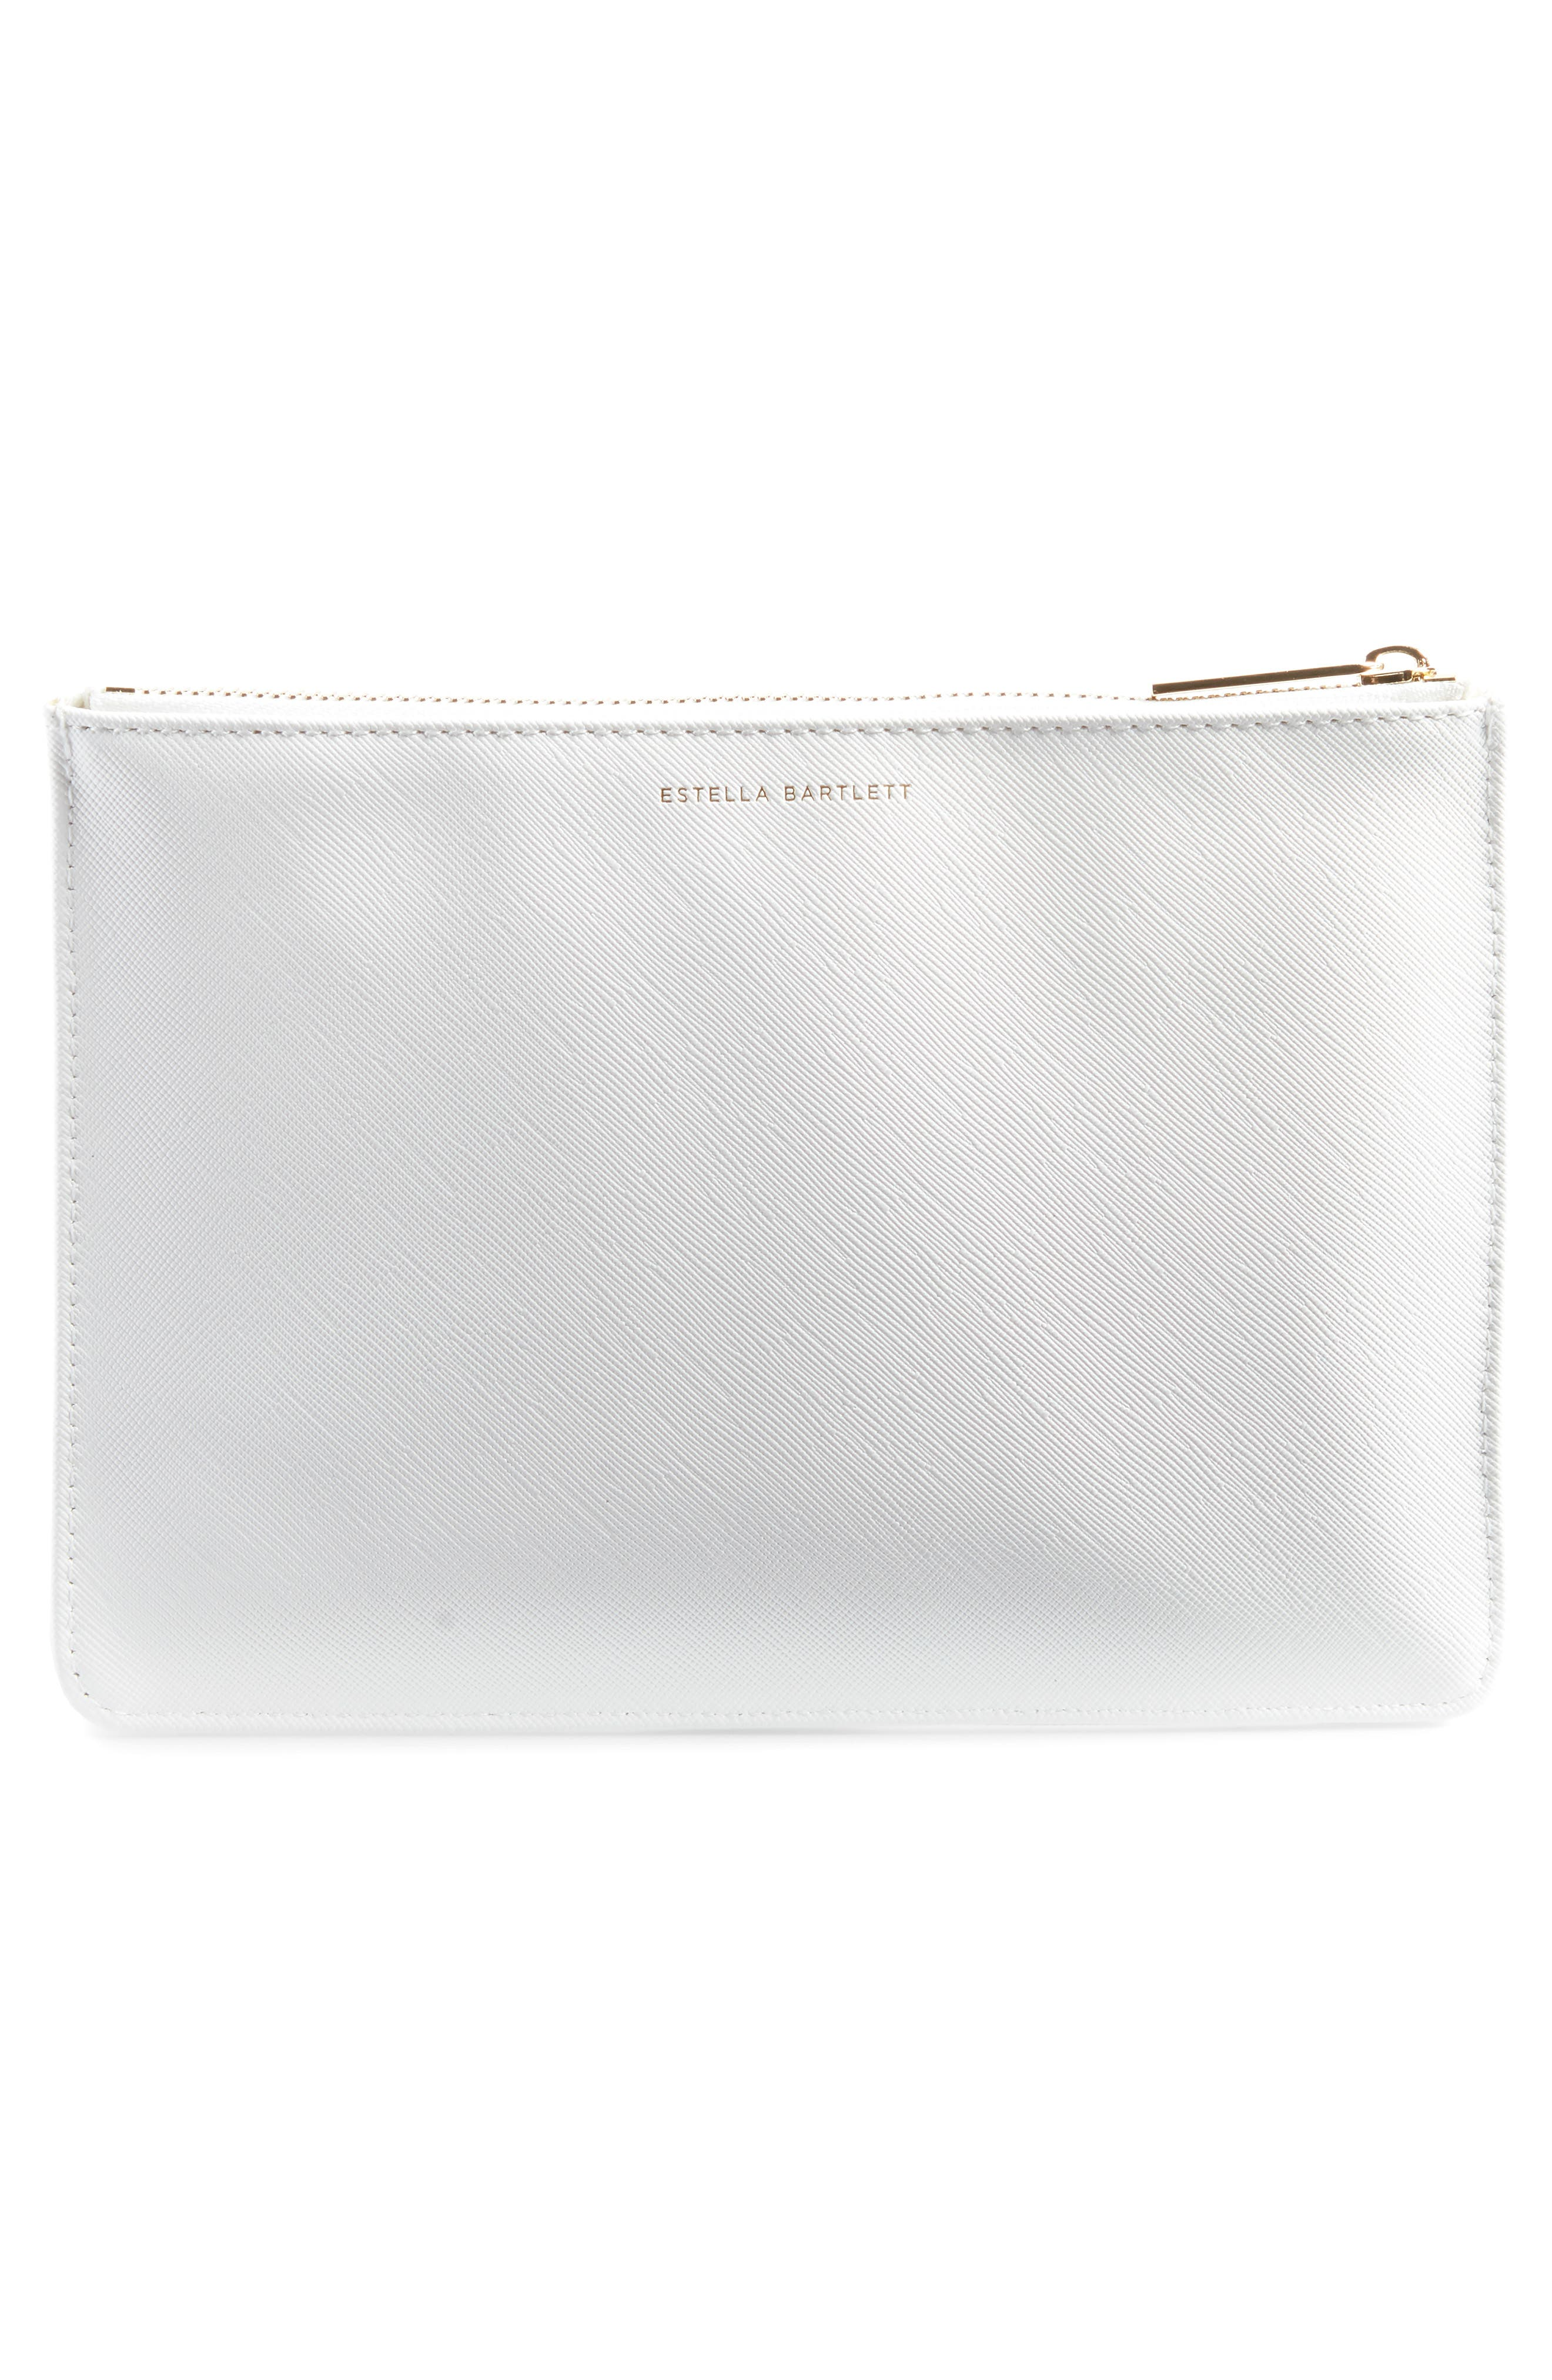 Live As You Dream Medium Faux Leather Pouch,                             Alternate thumbnail 3, color,                             Ivory